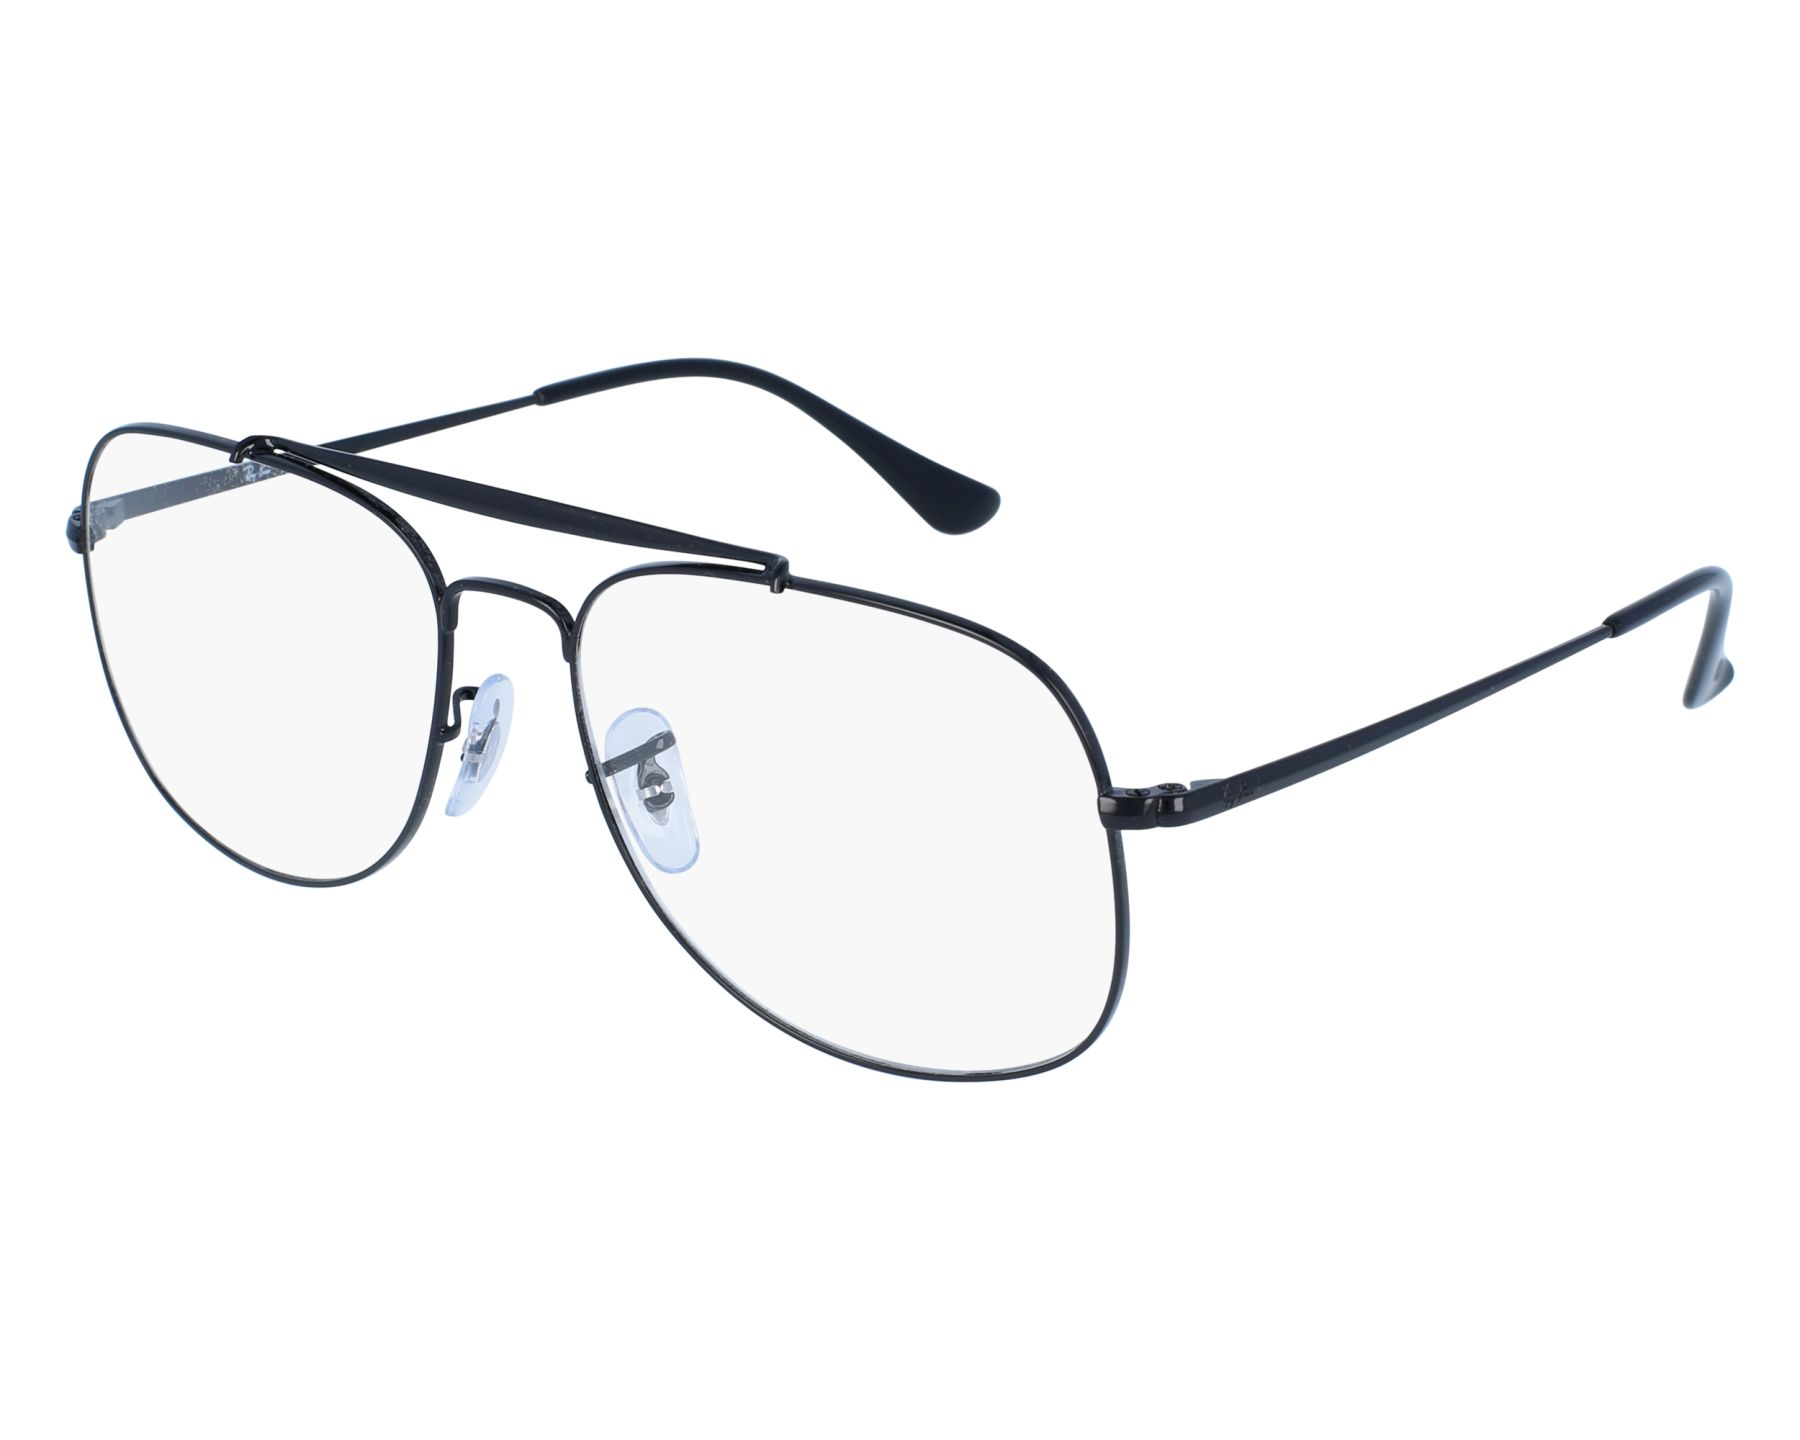 5db8ff4998 eyeglasses Ray-Ban RX-6389 2509 55-16 Black front view